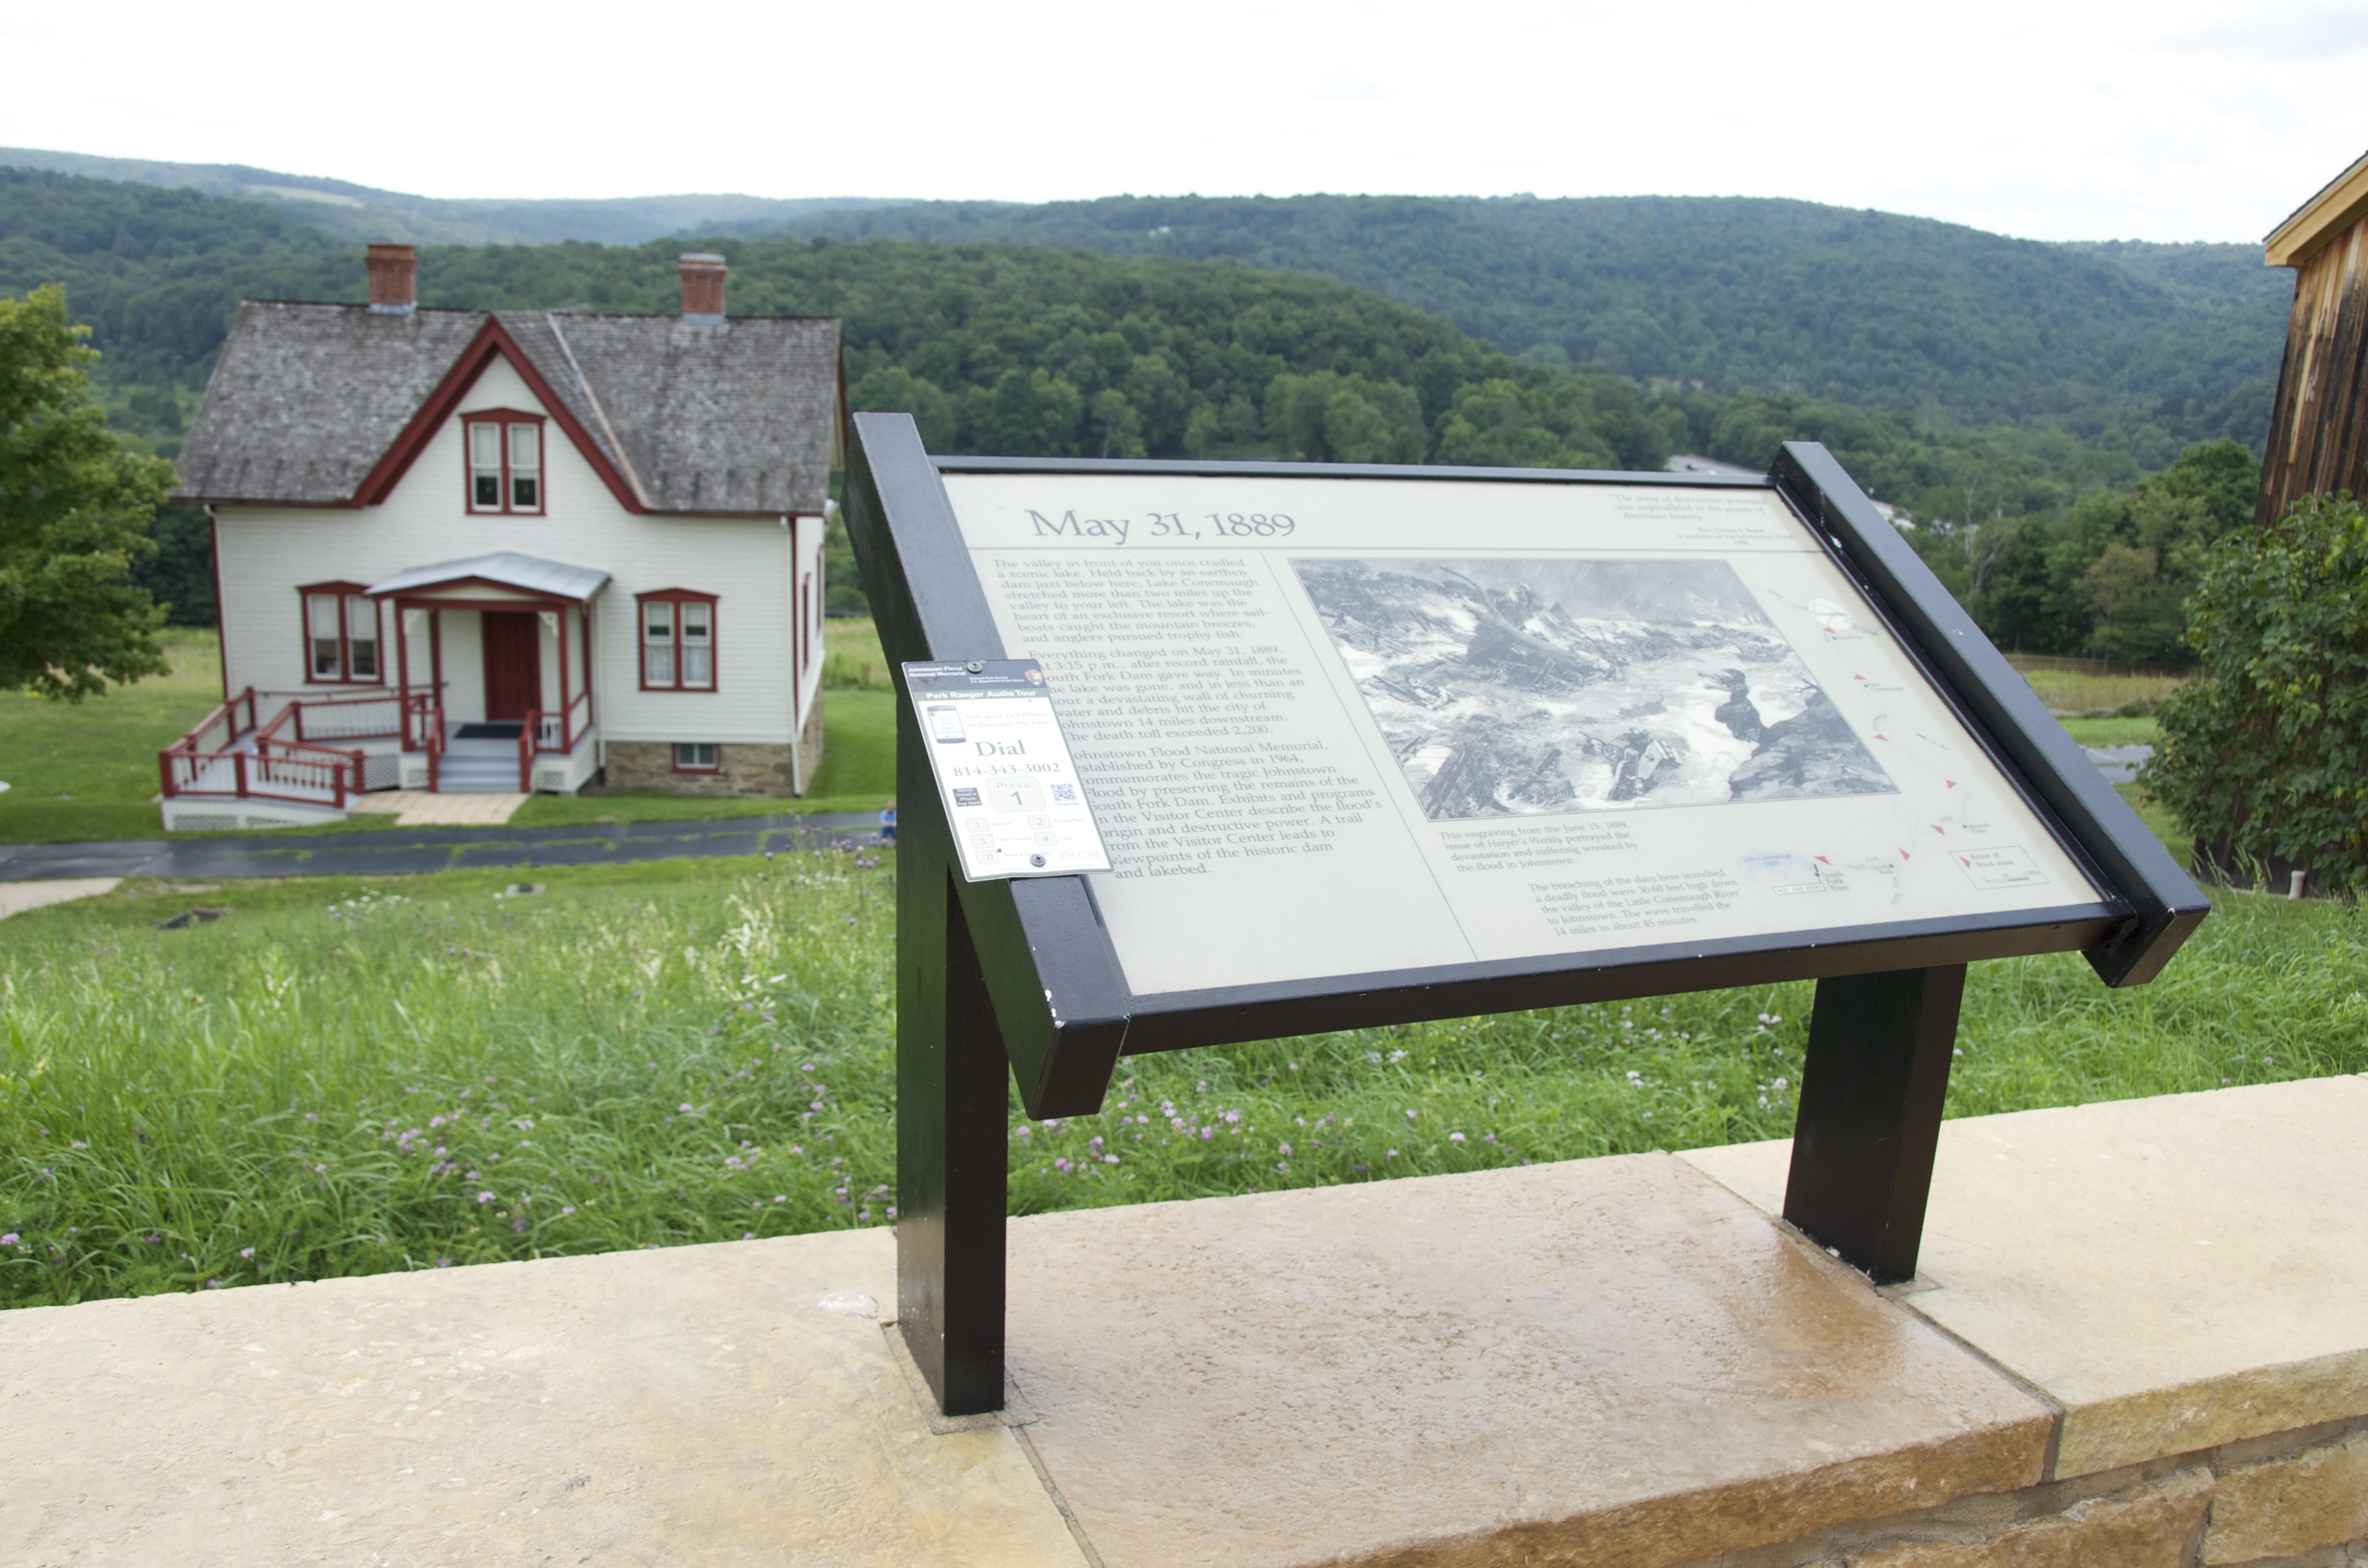 Johnstown Flood National Memorial Elias Unger House